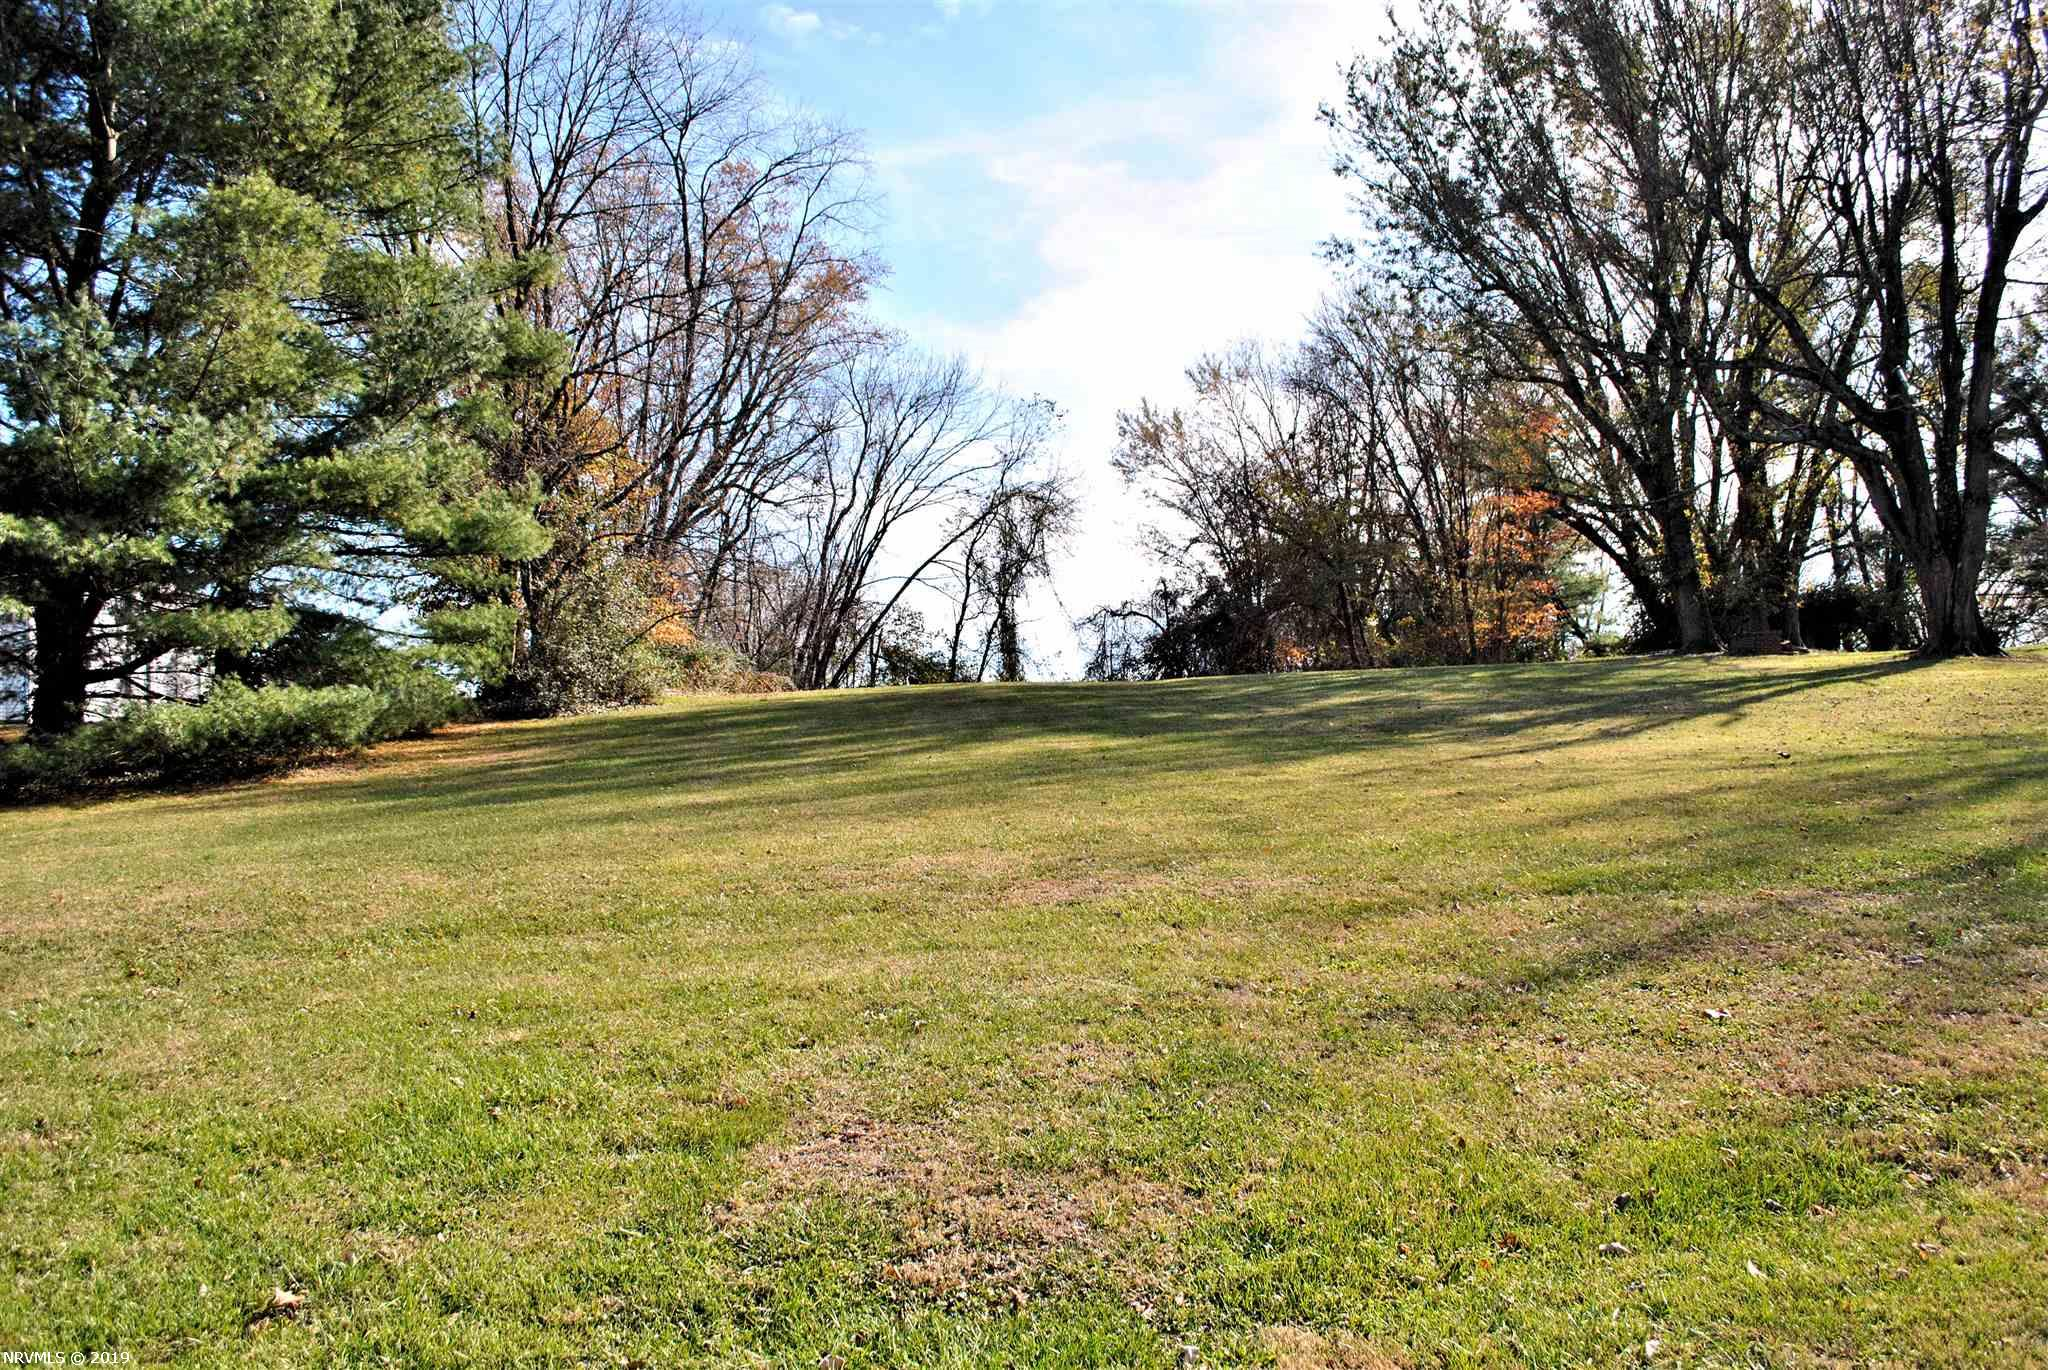 A magnificent 4.68 acre flat, corner lot in Dublin zoned R-3 with lots of development potential with public water, public sewer and natural gas available.  Just minutes to Route 100, New River Community College and 30 minute commute to Celanese or a 20 minute commute to Radford University.